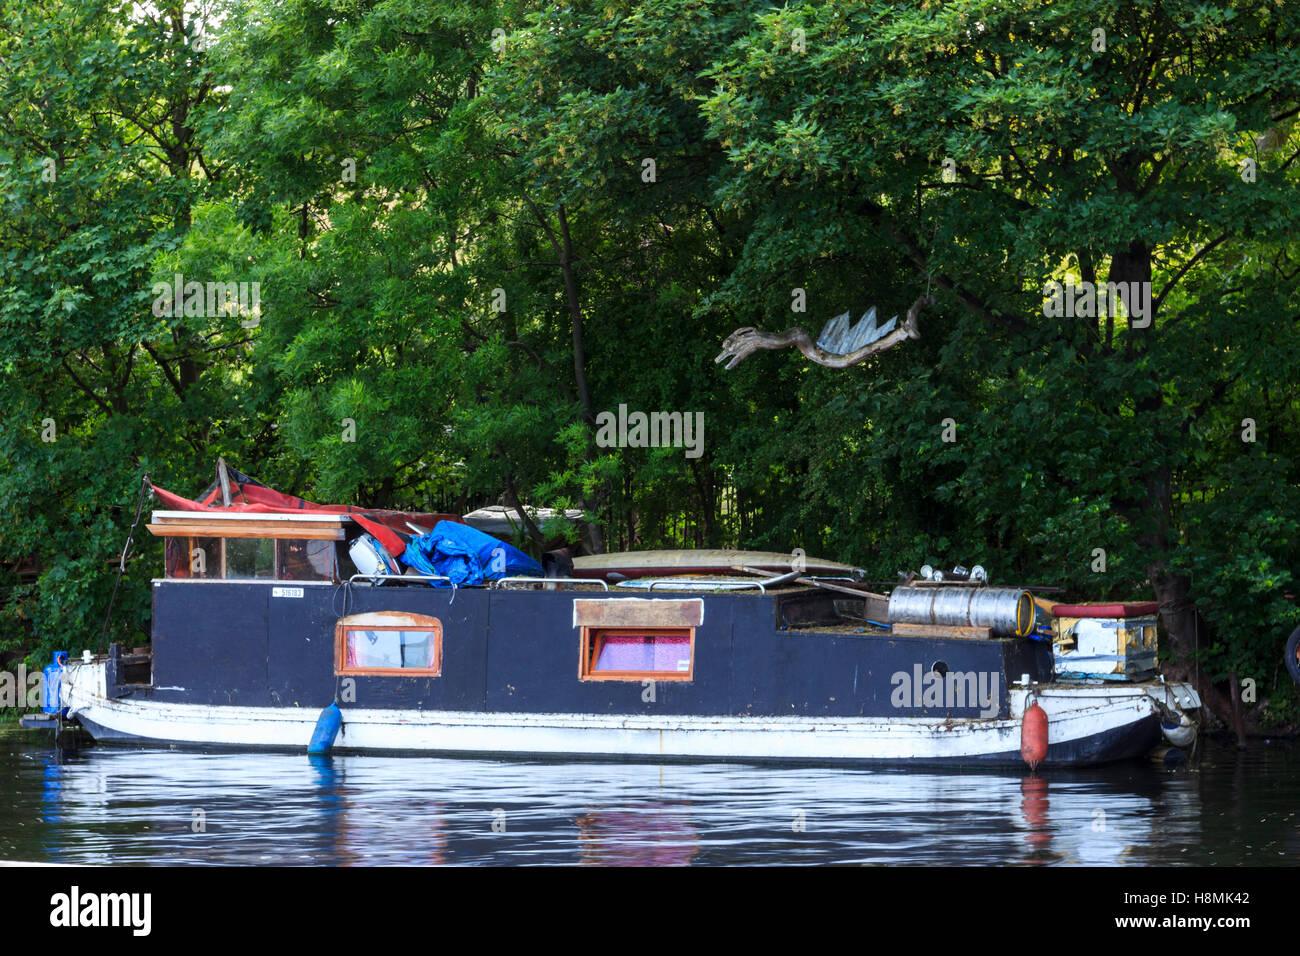 A wooden dragon sculpted from driftwood above a narrowboat on the River Lea, Upper Clapton, London, UK - Stock Image